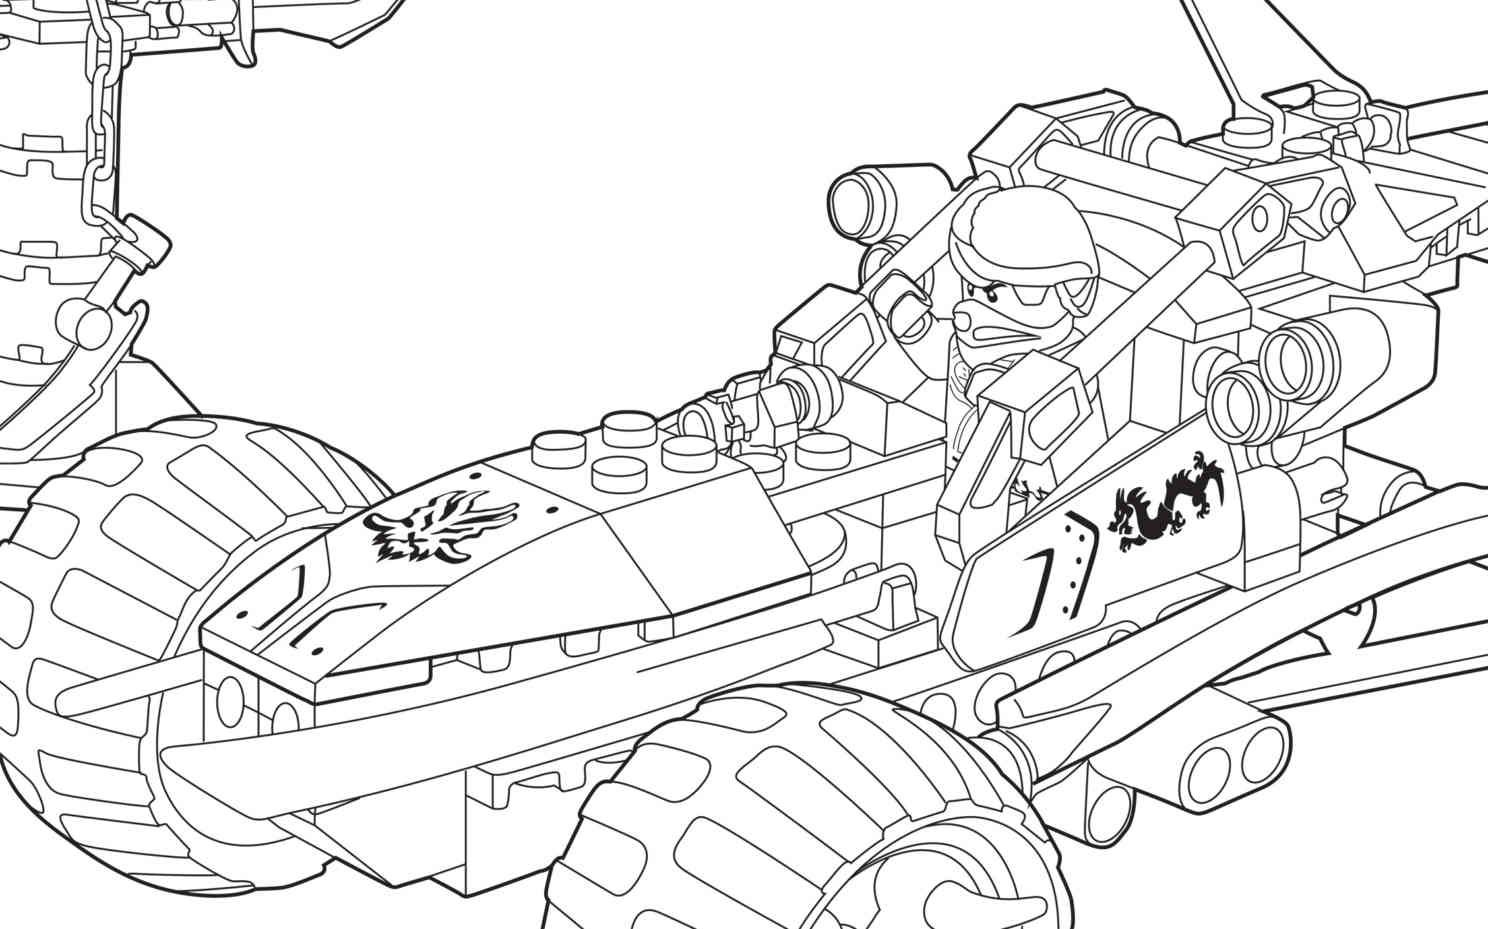 LEGO Ninjago 70755 coloring sheet